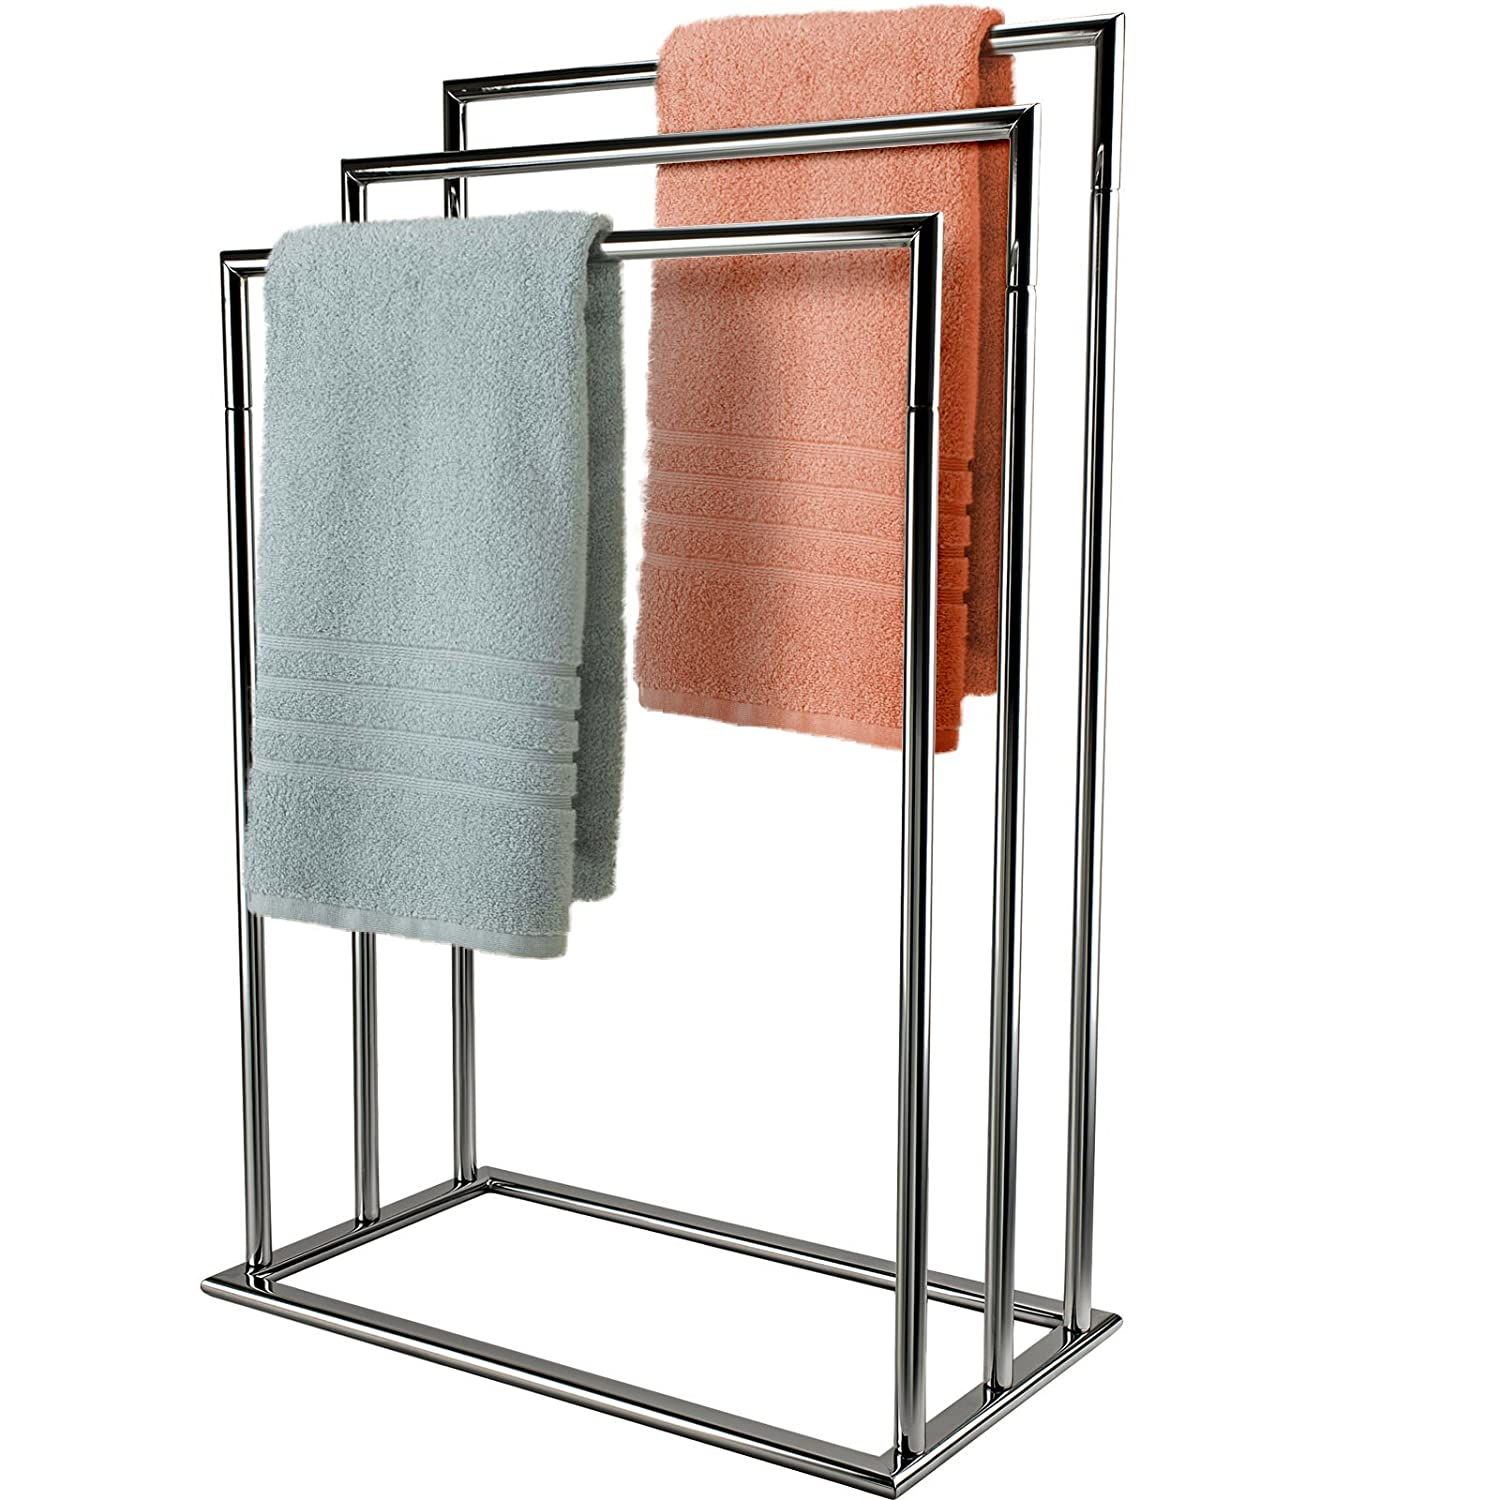 bath vida tier towel holder freestanding bathroom rail rack  - mastronics free standing  tier towel rail chrome airer drying bathroomstand